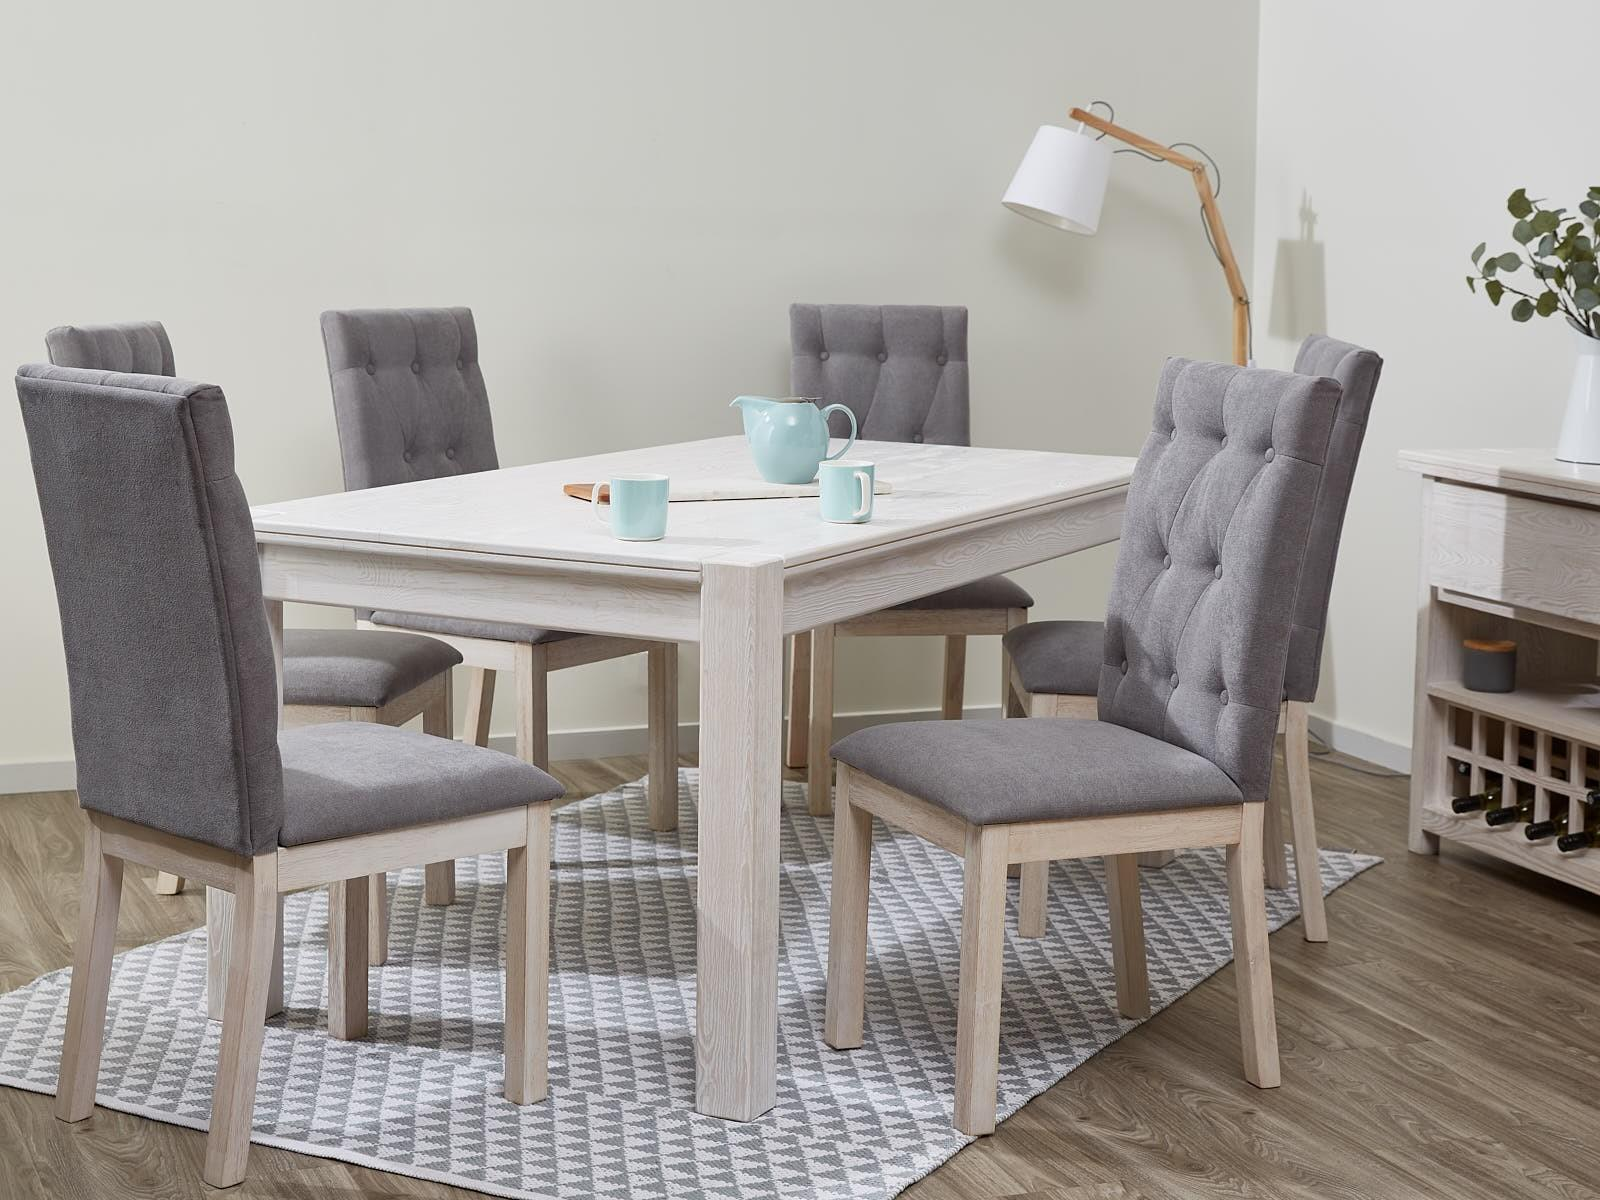 Dining Sets Upholstered Fabric Chairs Whitewash B2c